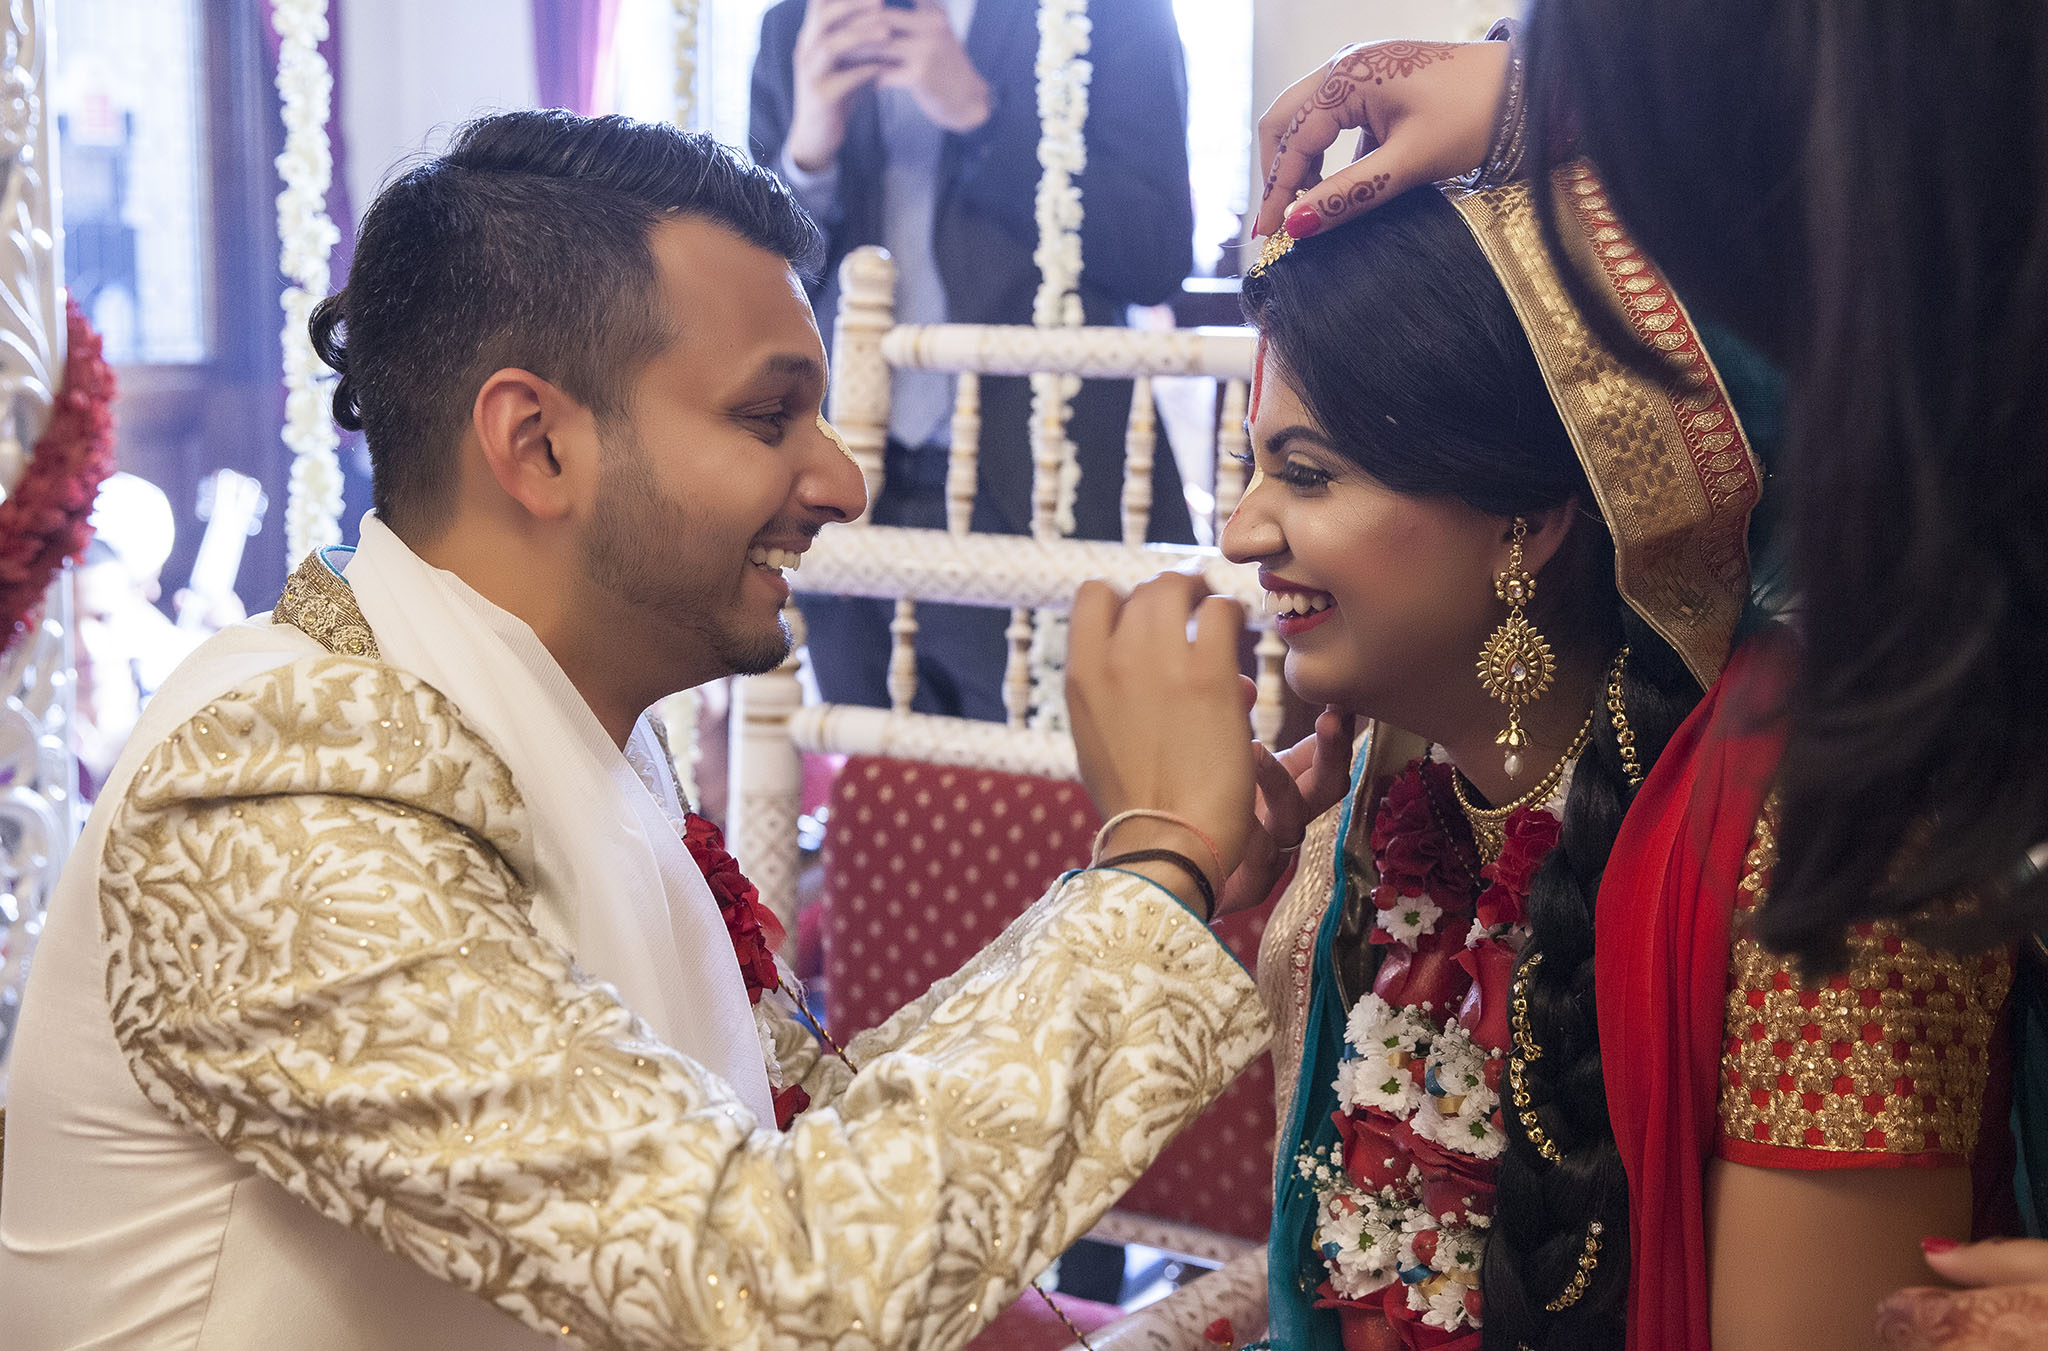 elizabethgphotography_kingslangley_hertfordshire_fineart_indian_wedding_photography_jigna_bhuja_bhaktivedanta_manor_watford_36.jpg